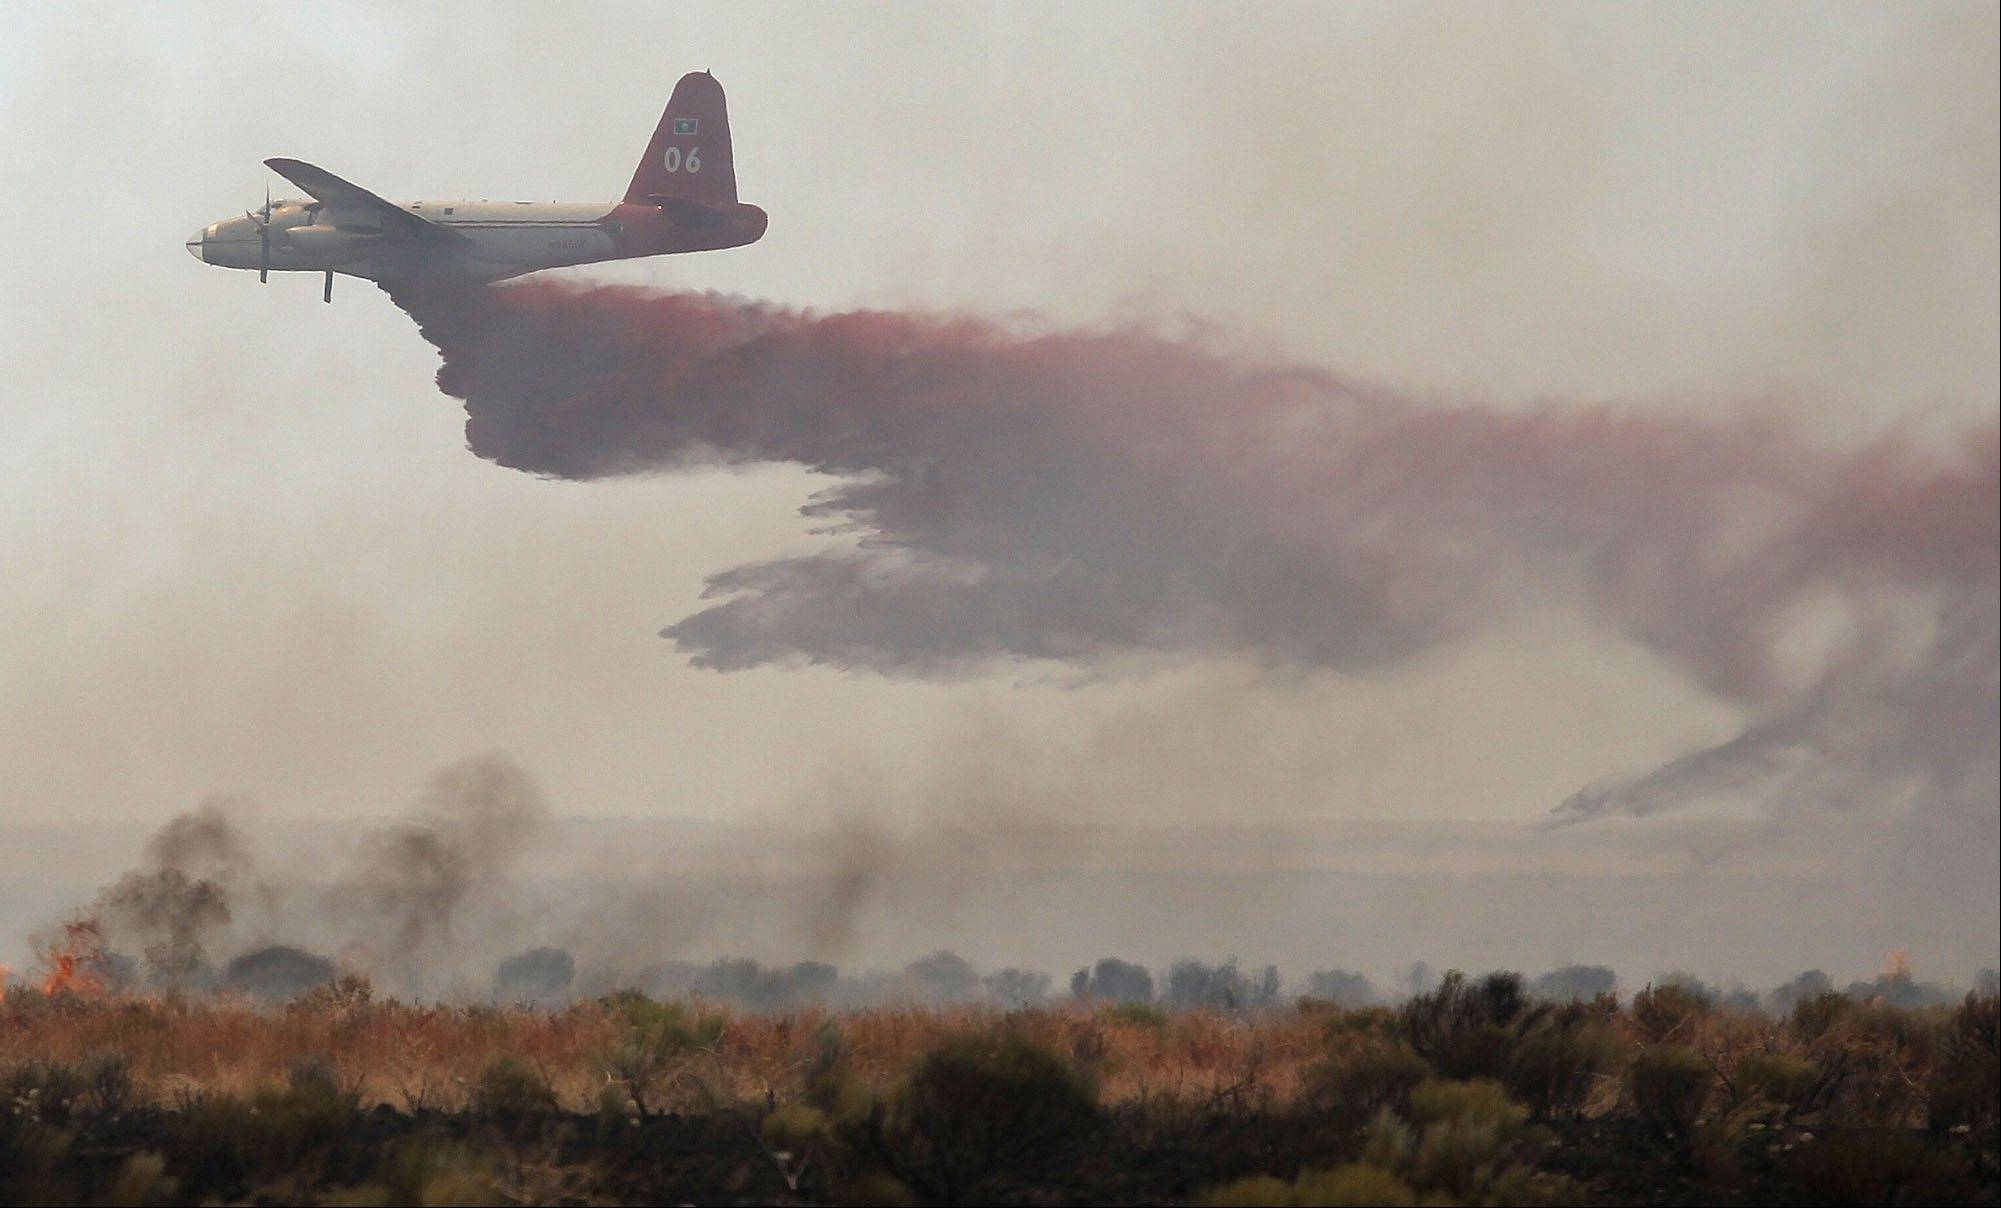 An aircraft drops fire retardant on the Kinyon Road Fire off of Horse Butte Road west of Castleford, Idaho on Sunday. More than 150 firefighters are fighting the blaze that has consumed over 75,000 acres.